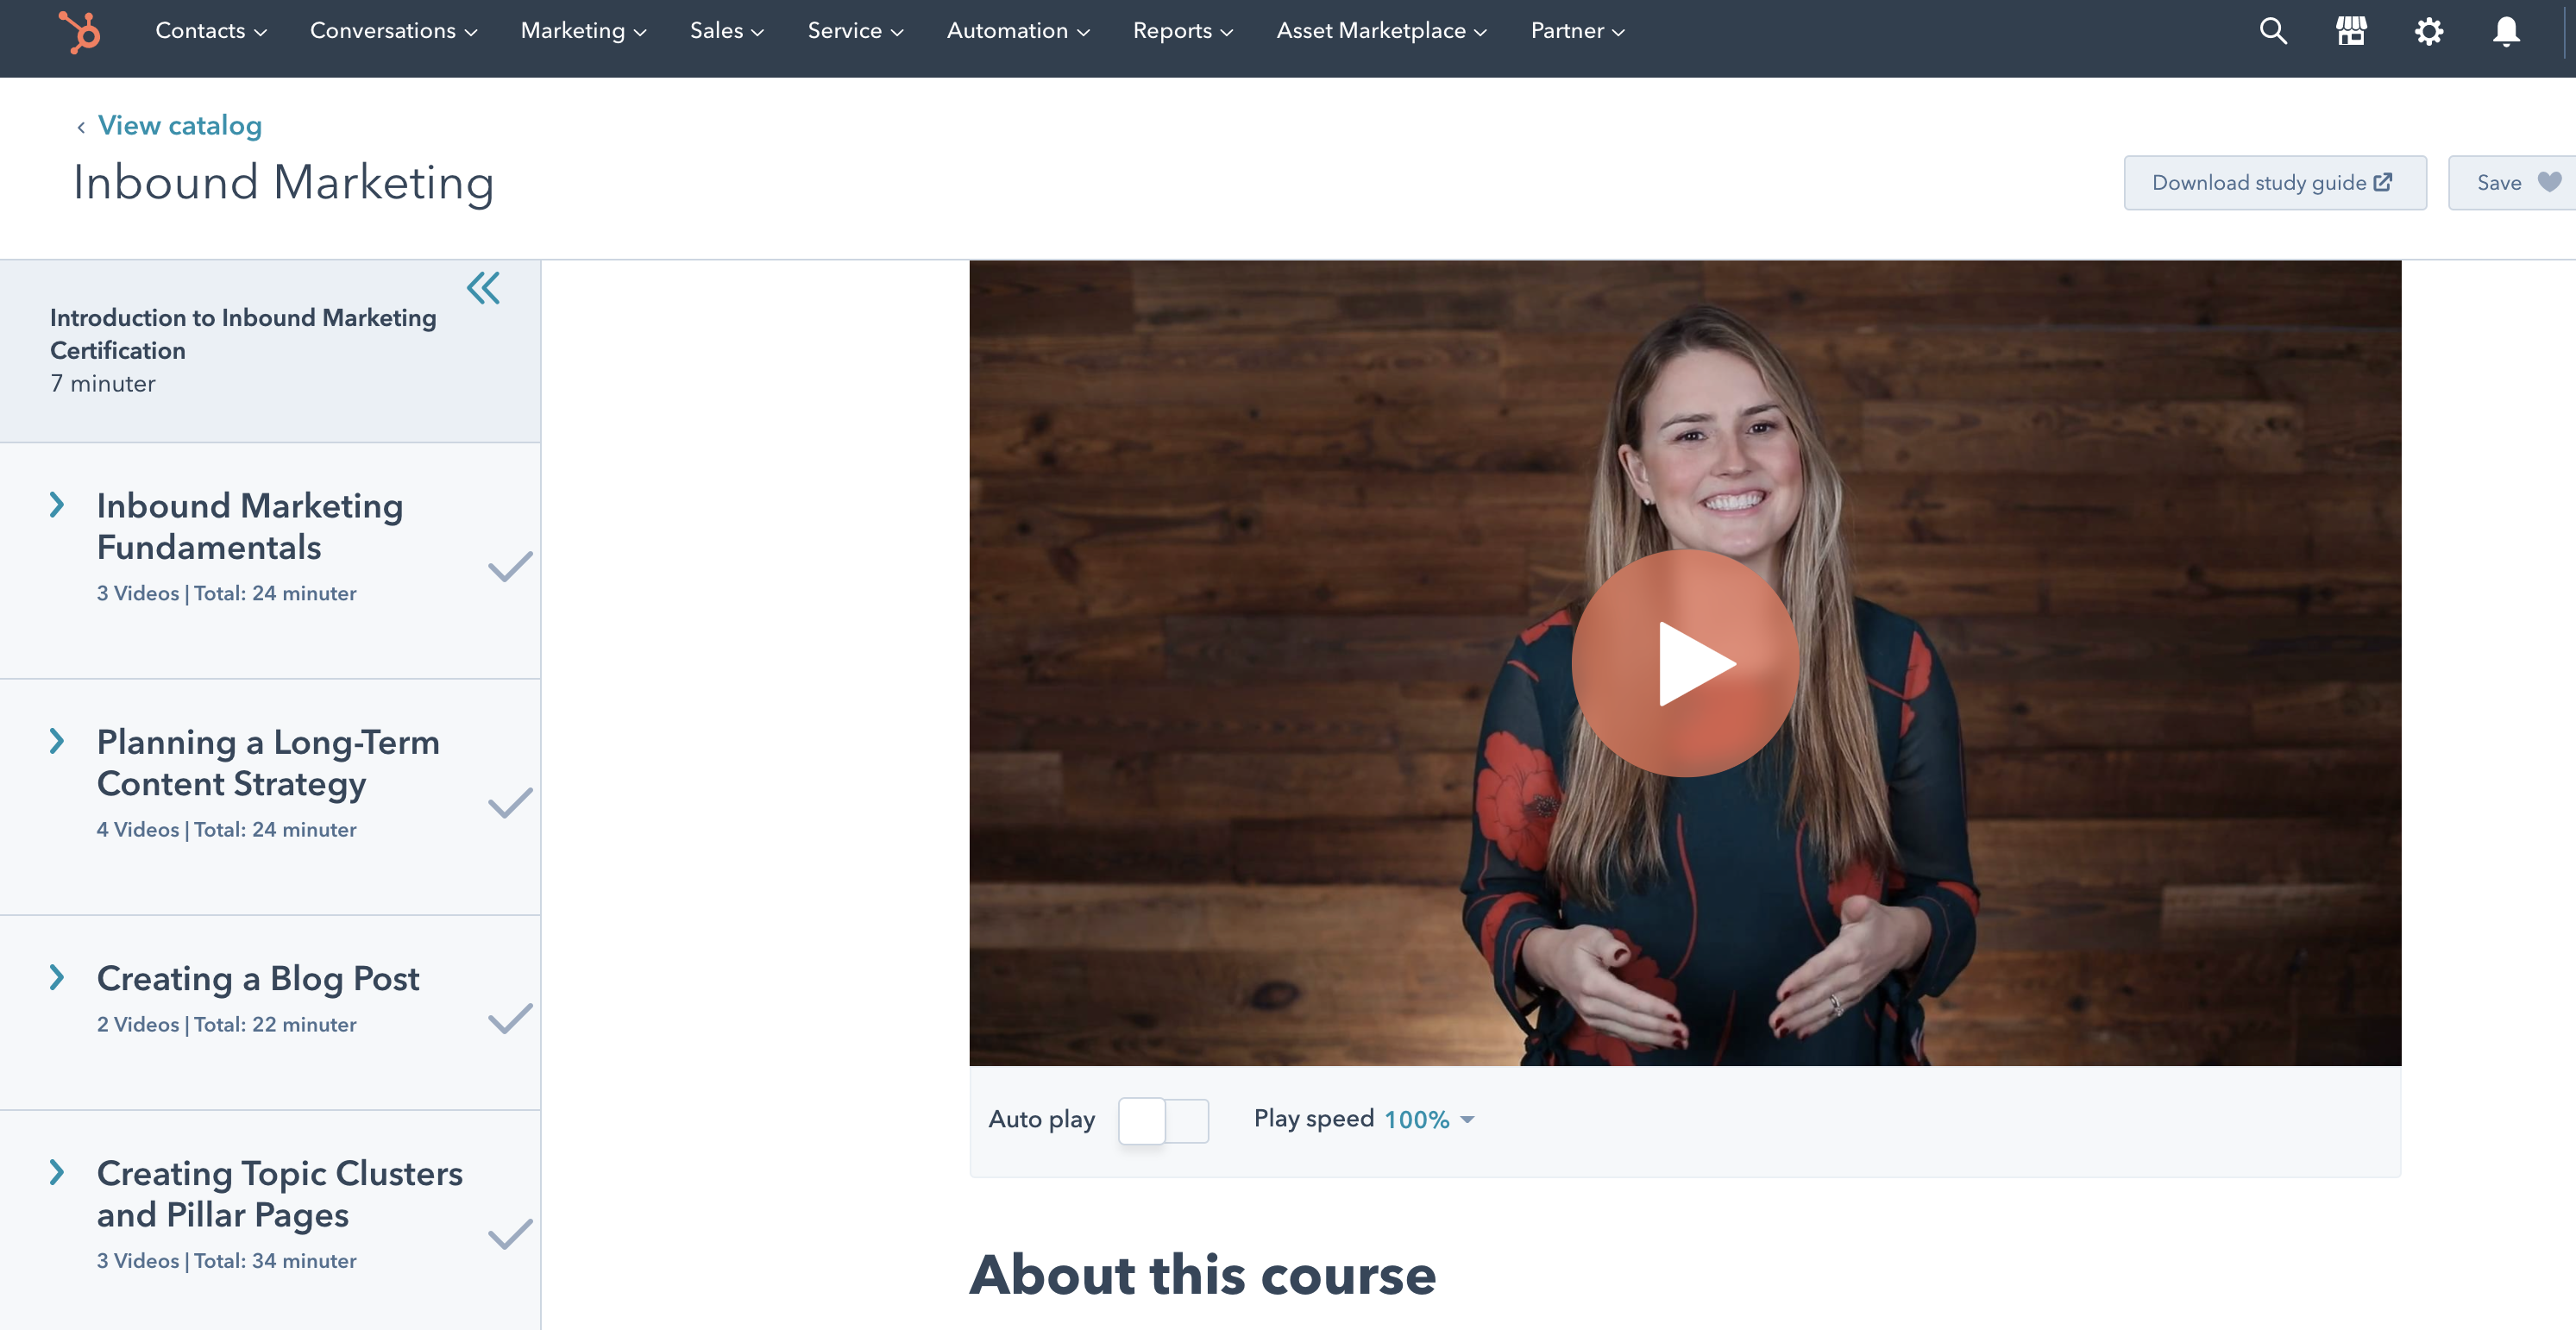 Inbound marketing course 092020